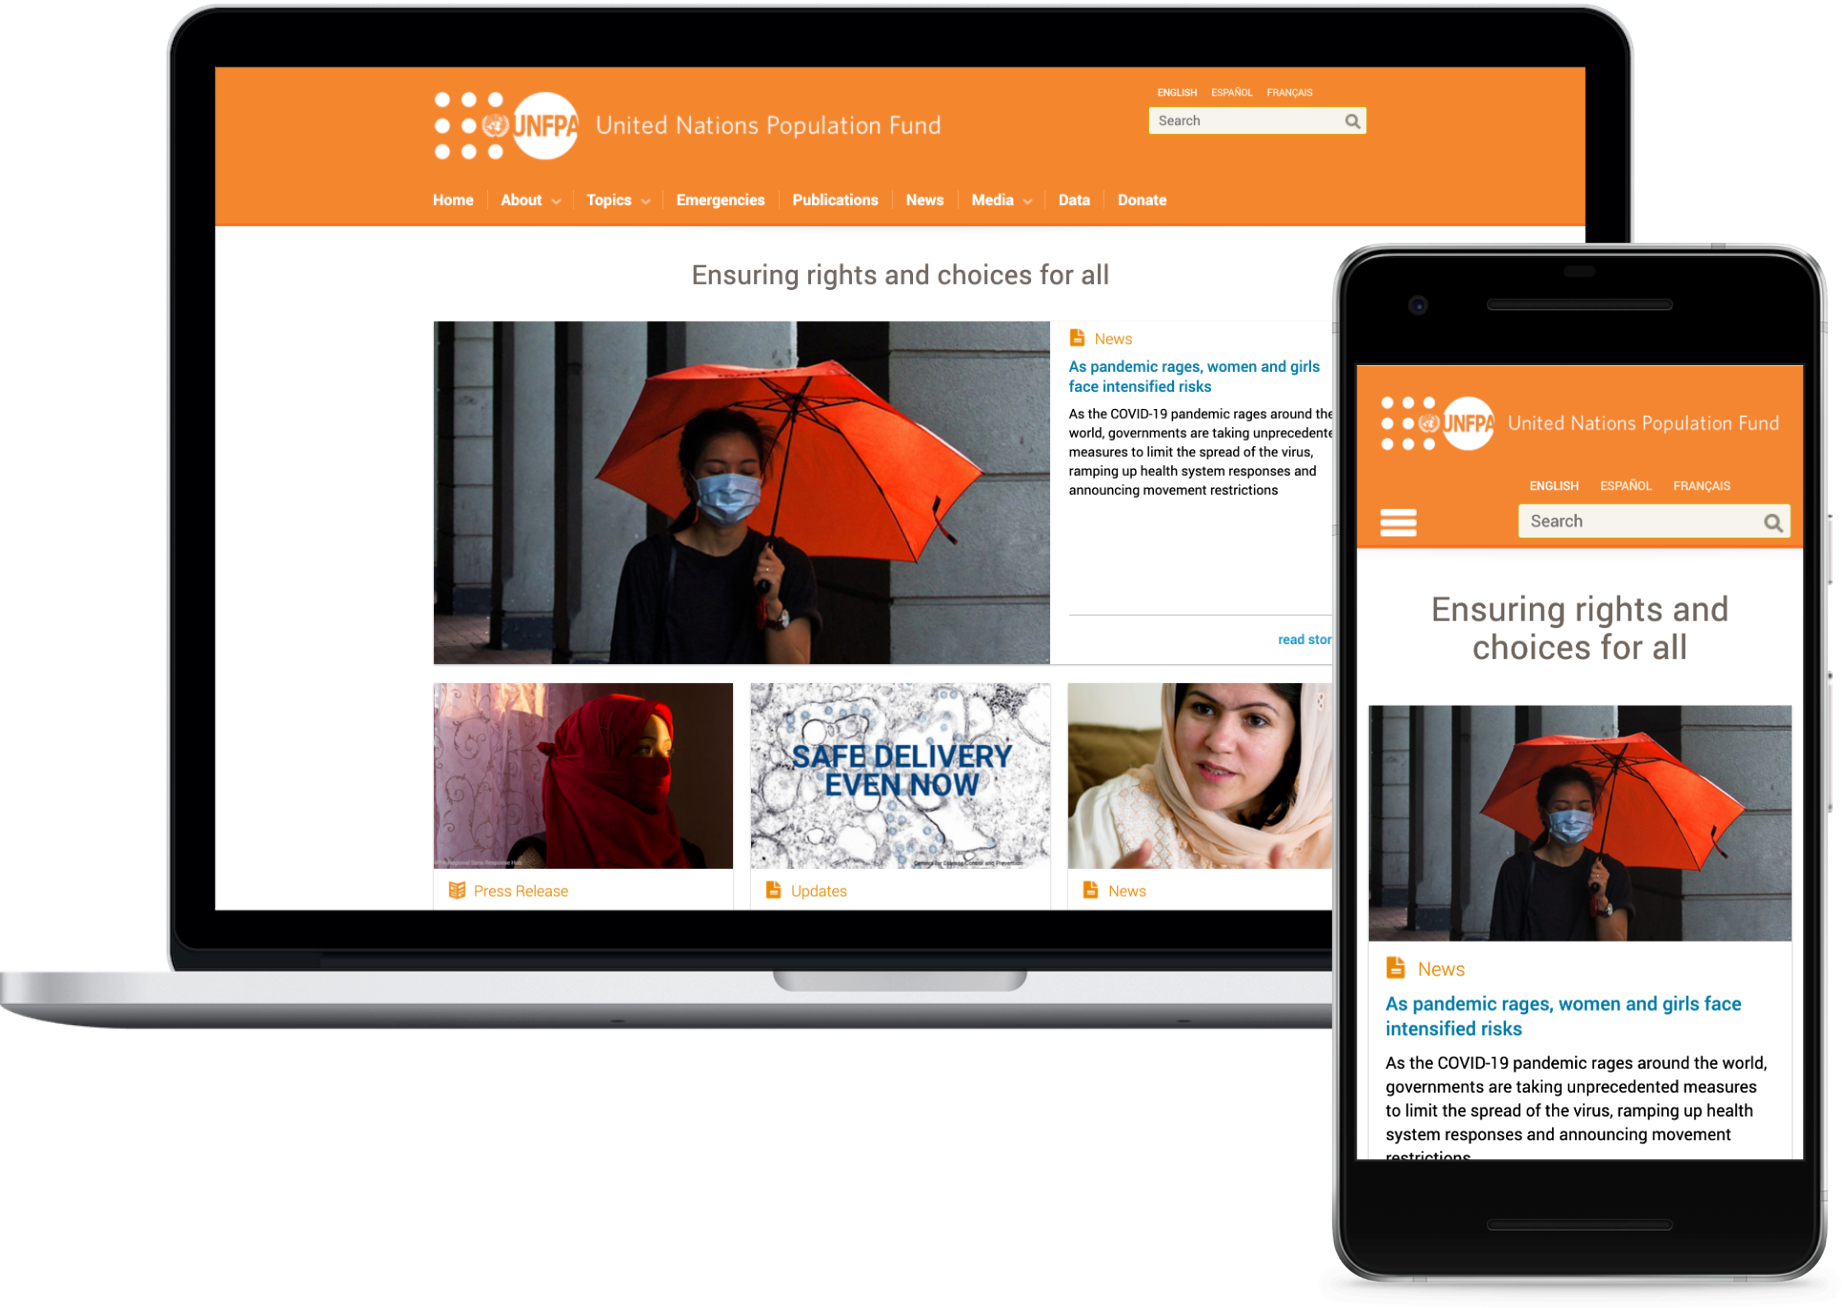 Current UNFPA homepage